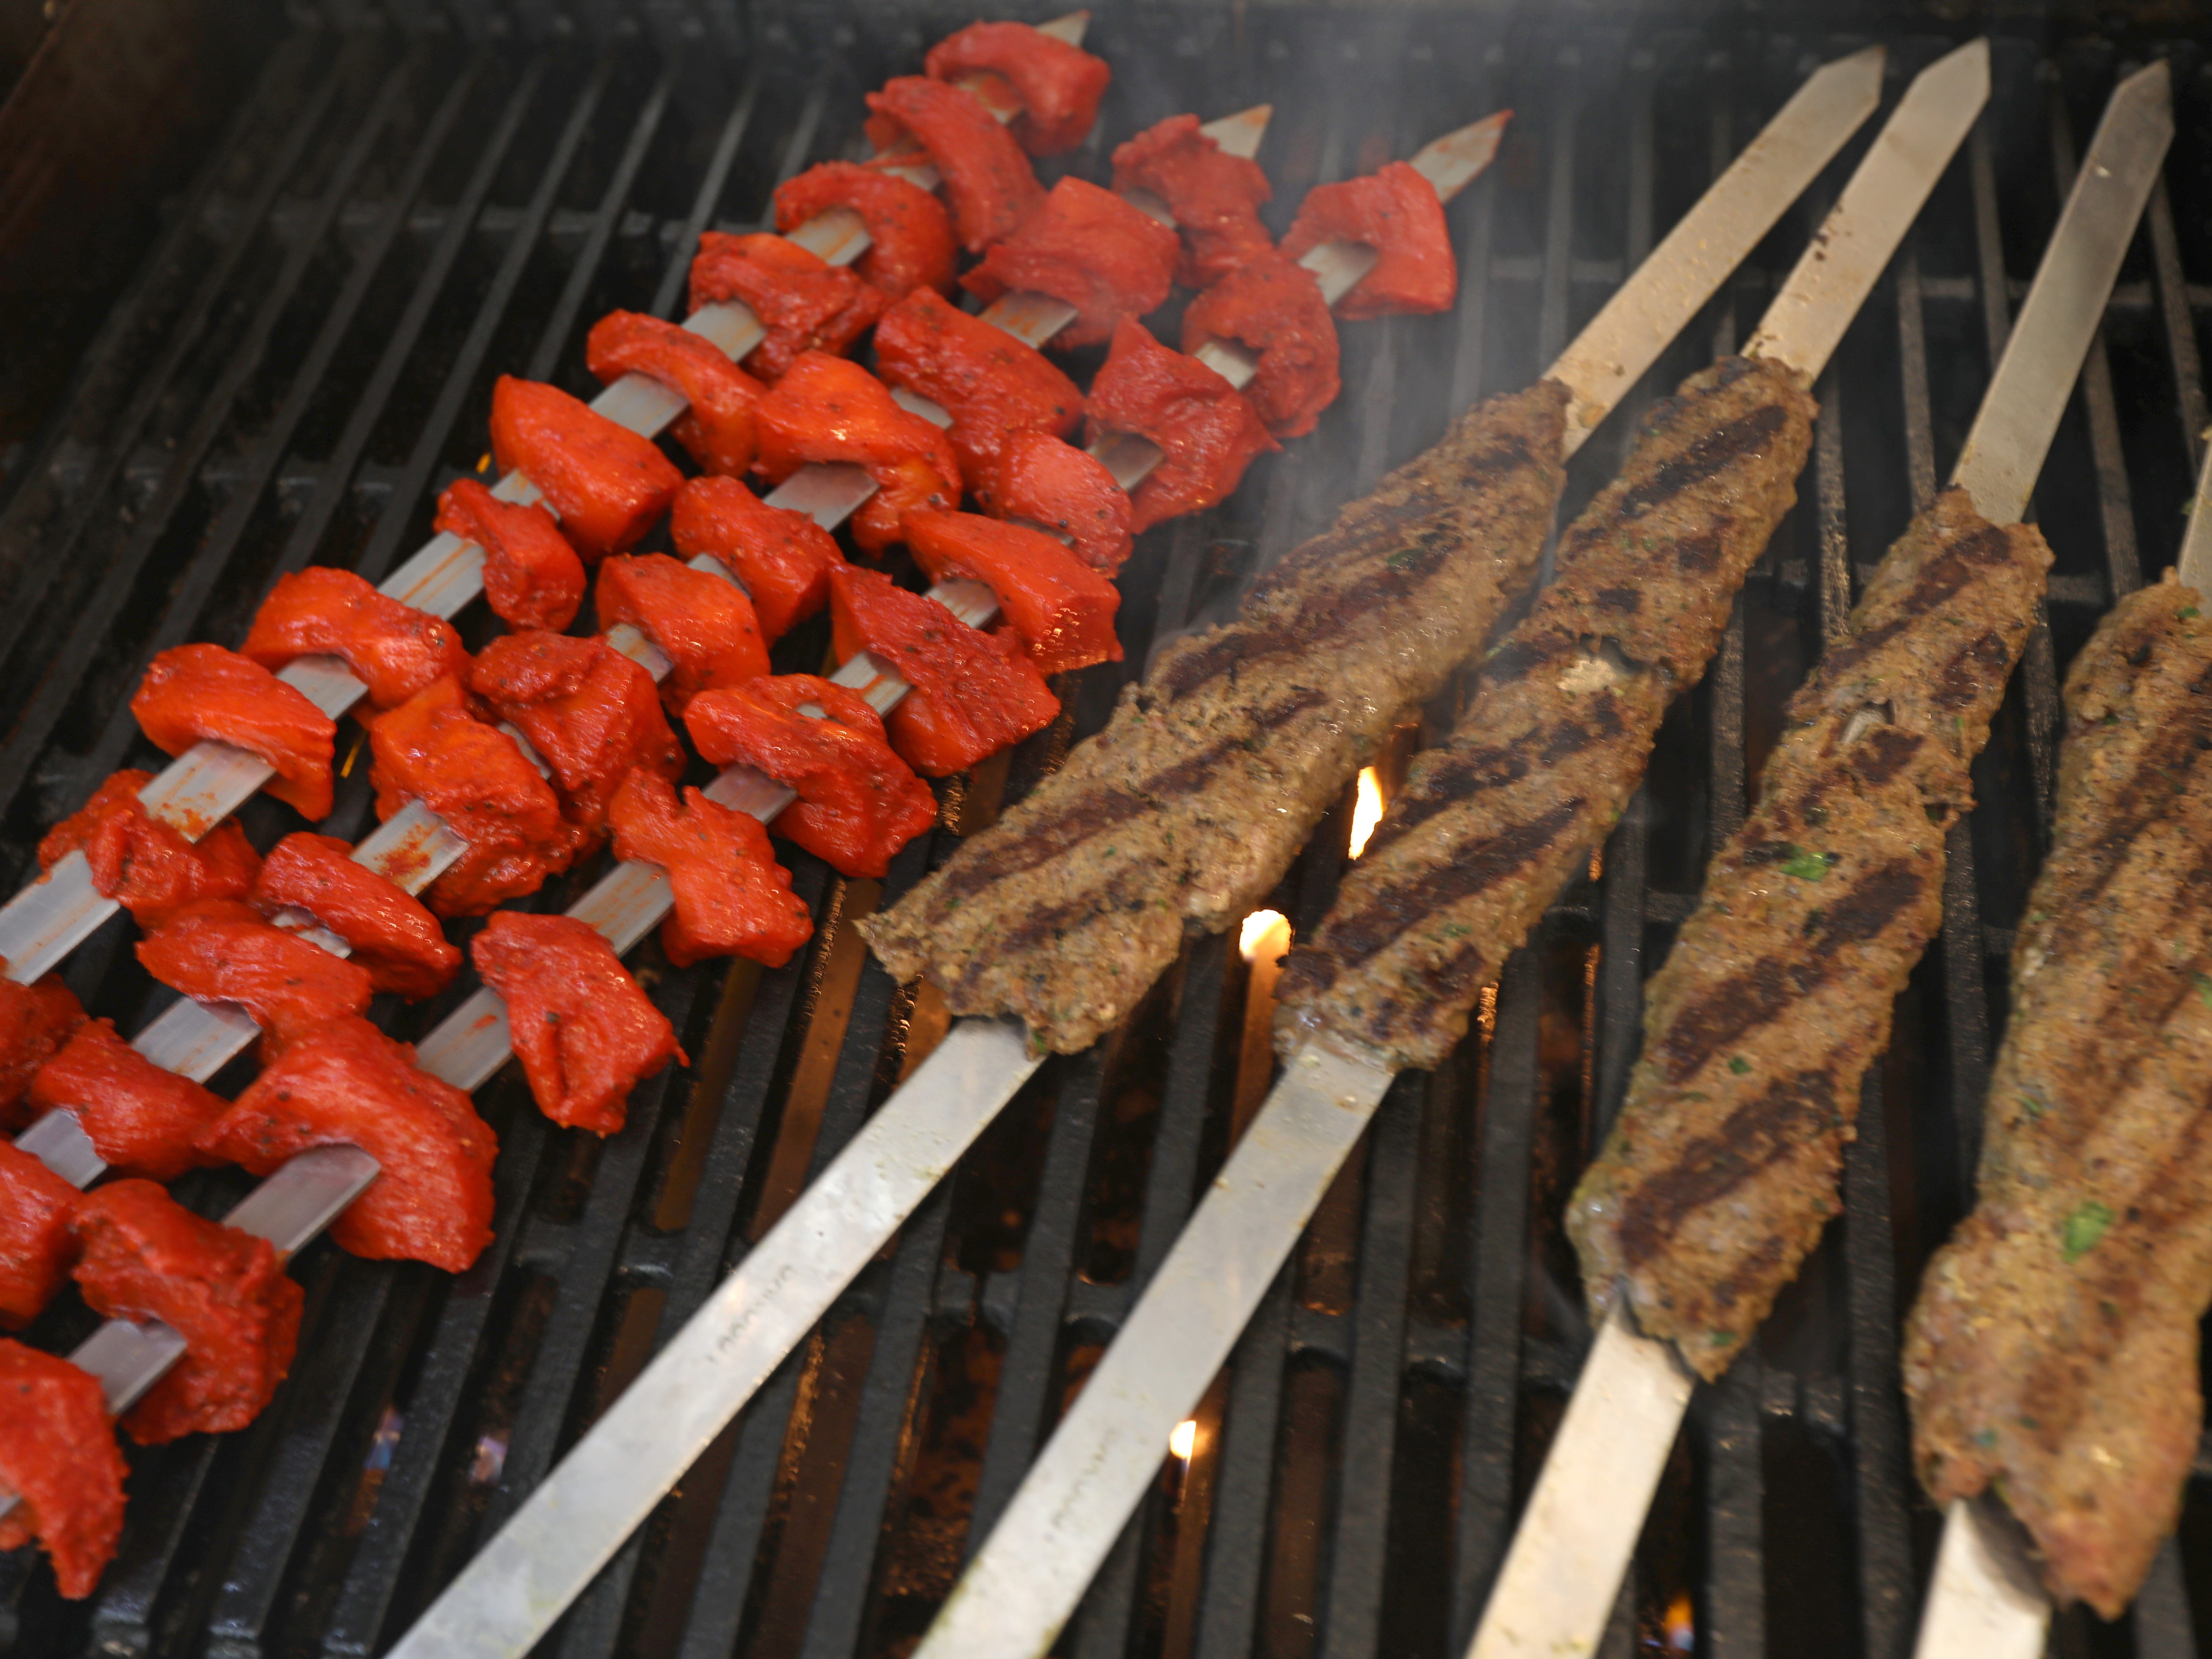 Skewers of tandoori chicken and beef pack the grill.